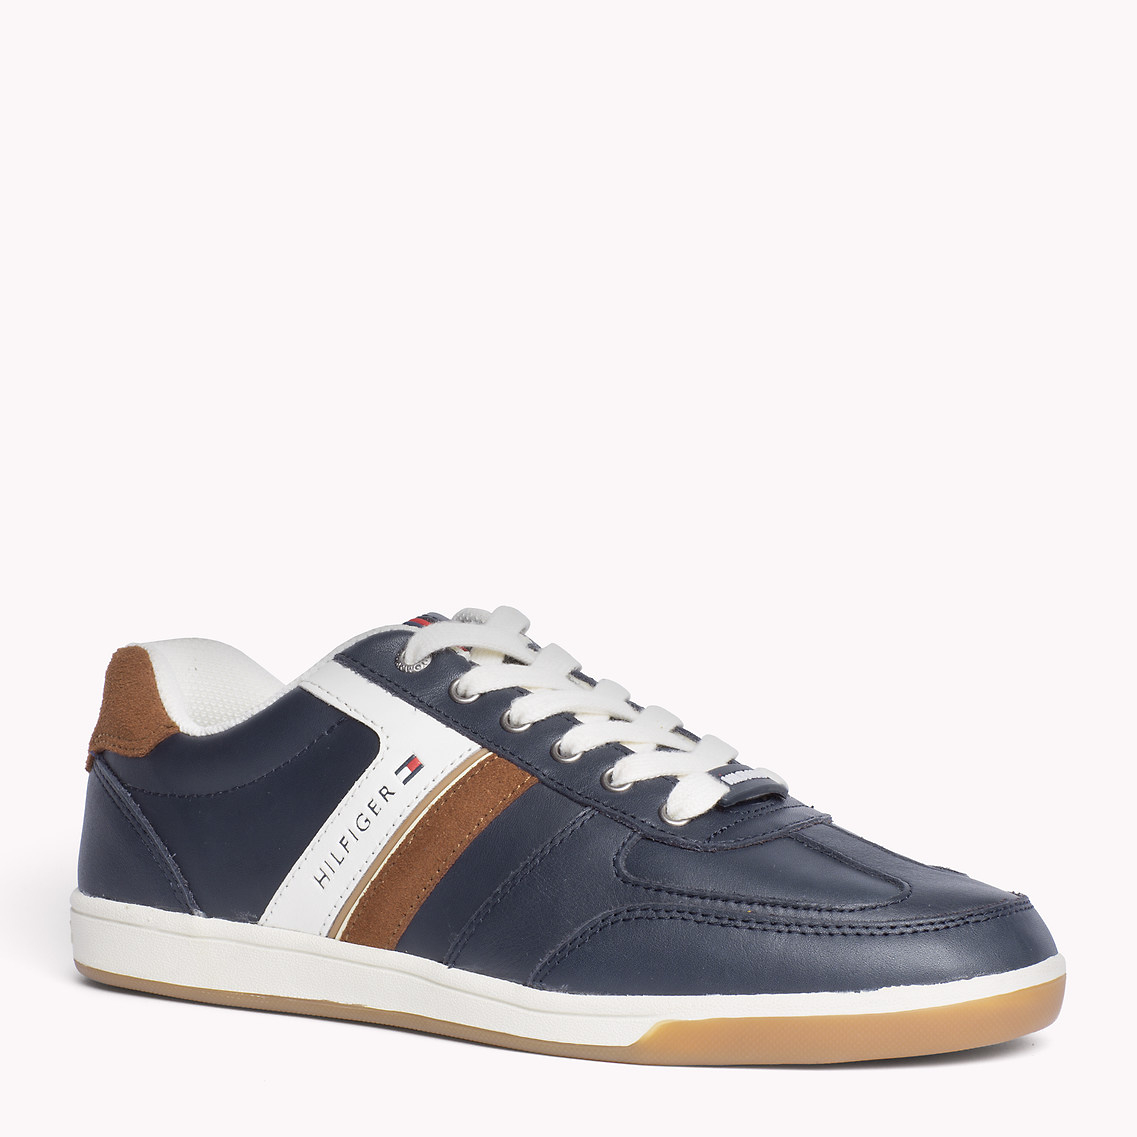 tommy hilfiger ryan sneaker in blue for men lyst. Black Bedroom Furniture Sets. Home Design Ideas